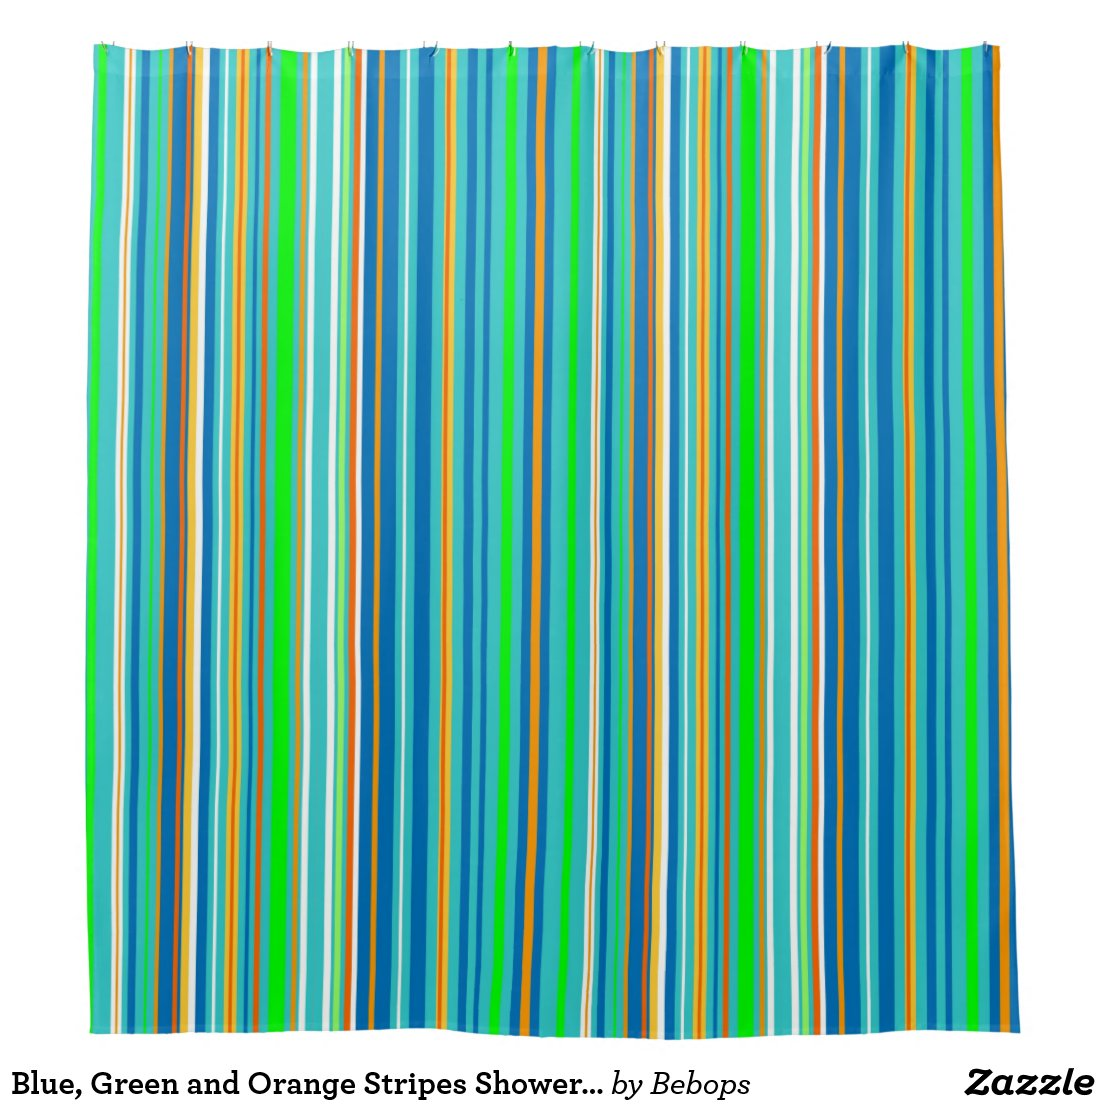 Blue, Green and Orange Stripes Shower Curtain